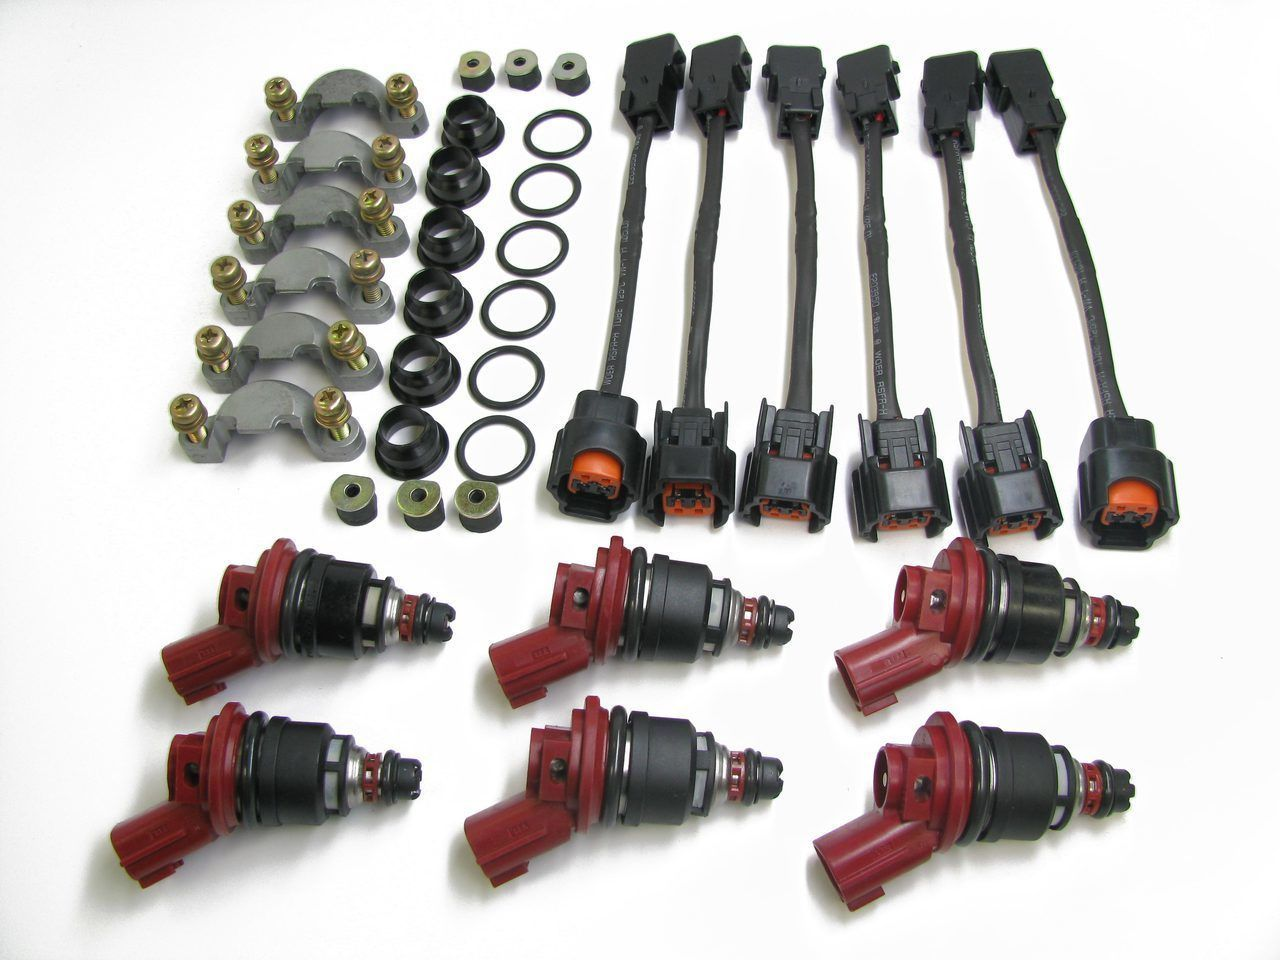 AUS Injection Injectors Set Late Style w/ Optional Early to Late Adapter Kit, 550cc - Nissan 300ZX Z32